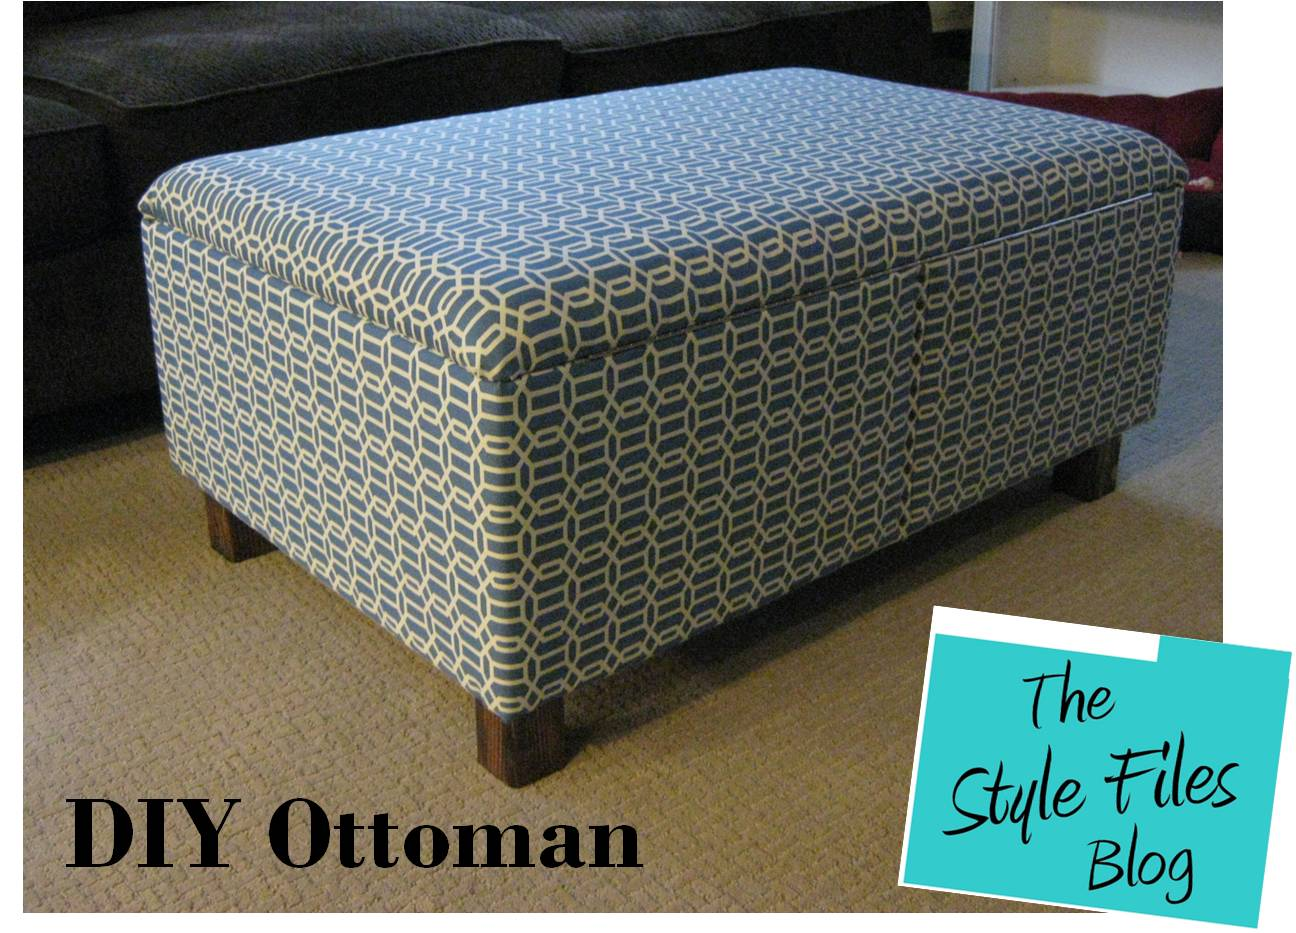 diy ottoman instructions the style files blog at